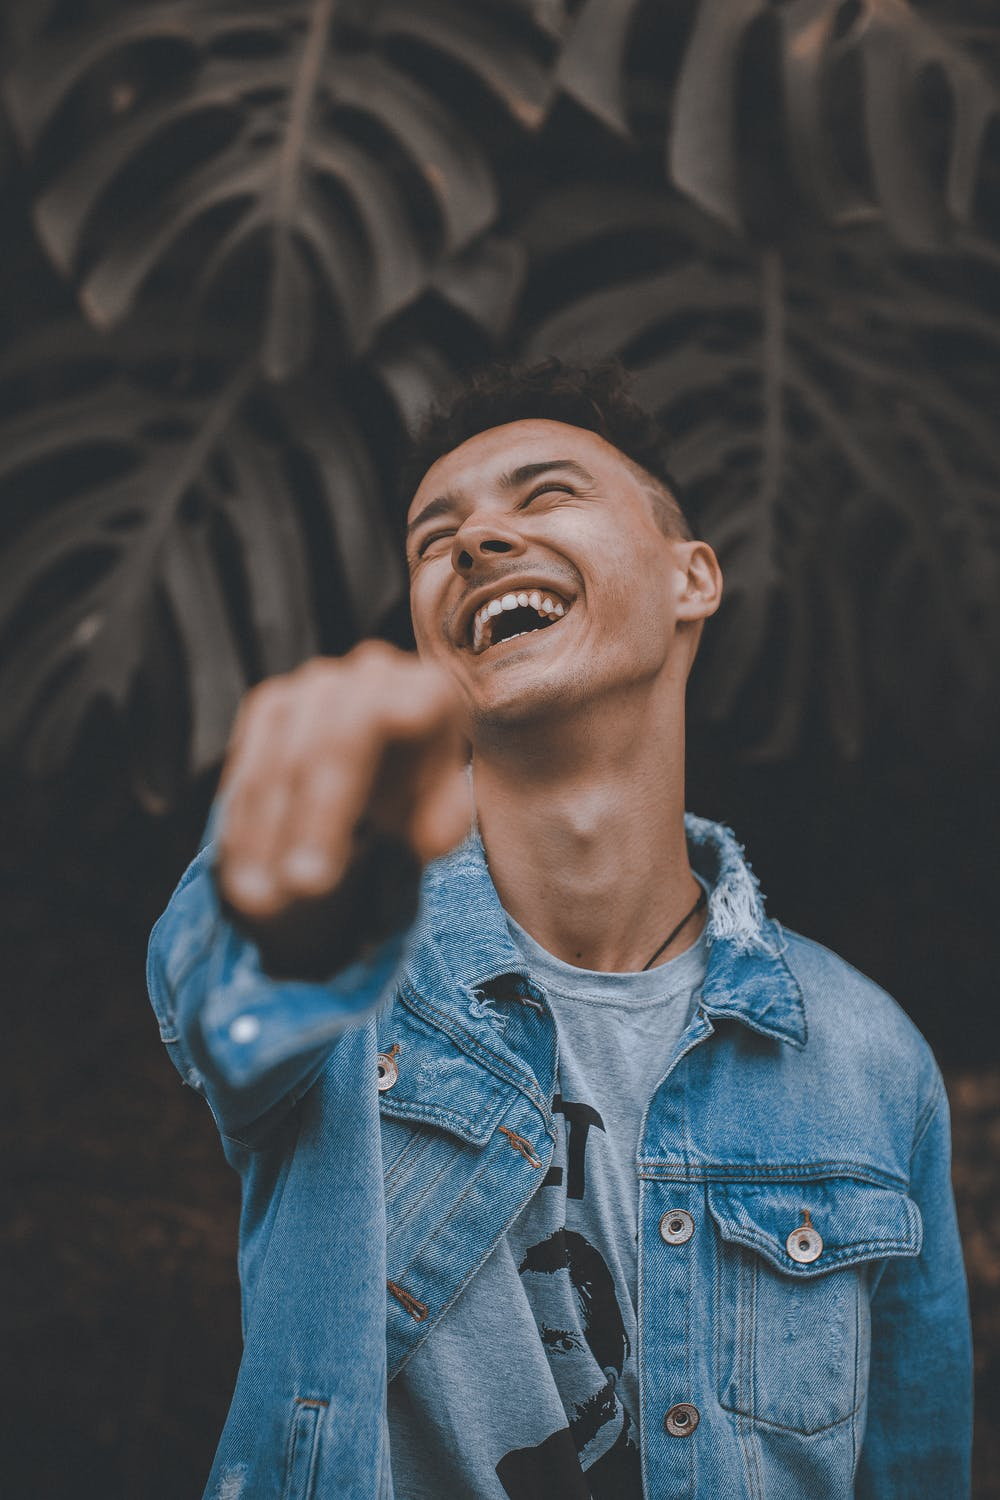 Man laughing while pointing his finger. | Photo: Pexels